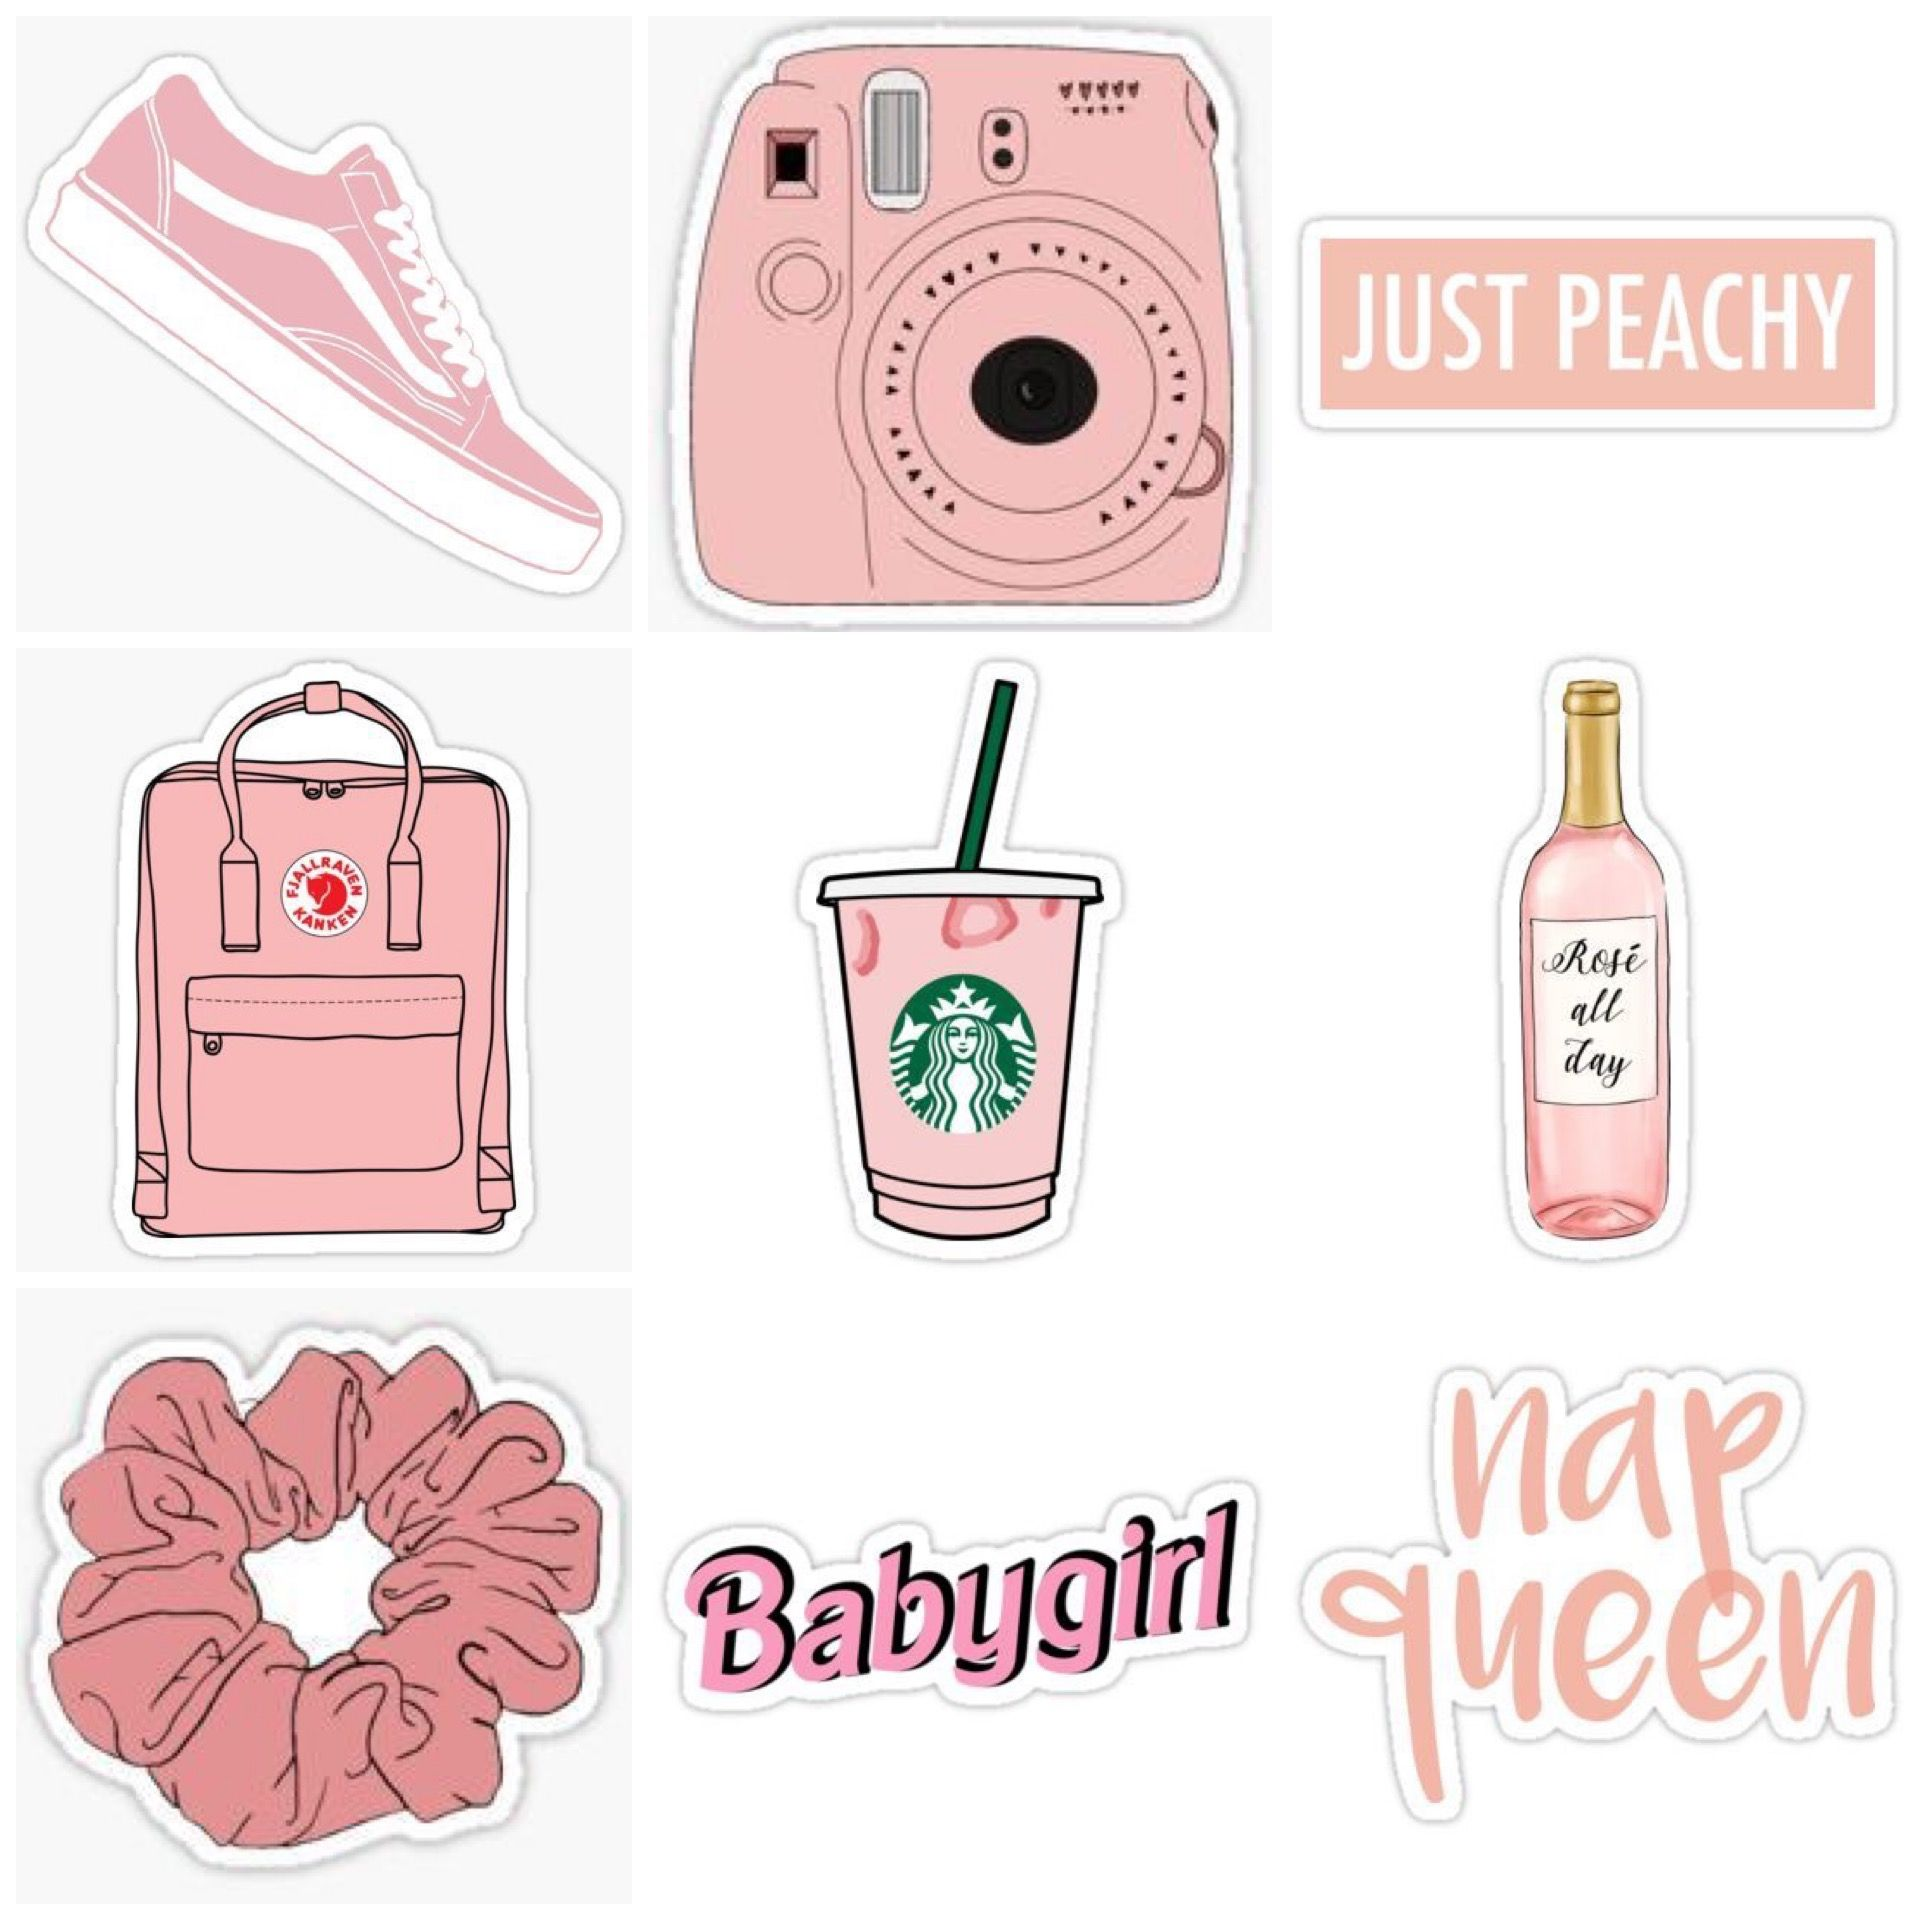 graphic relating to Aesthetic Stickers Printable called purple peachy stickers Magazine within 2019 Tumblr stickers